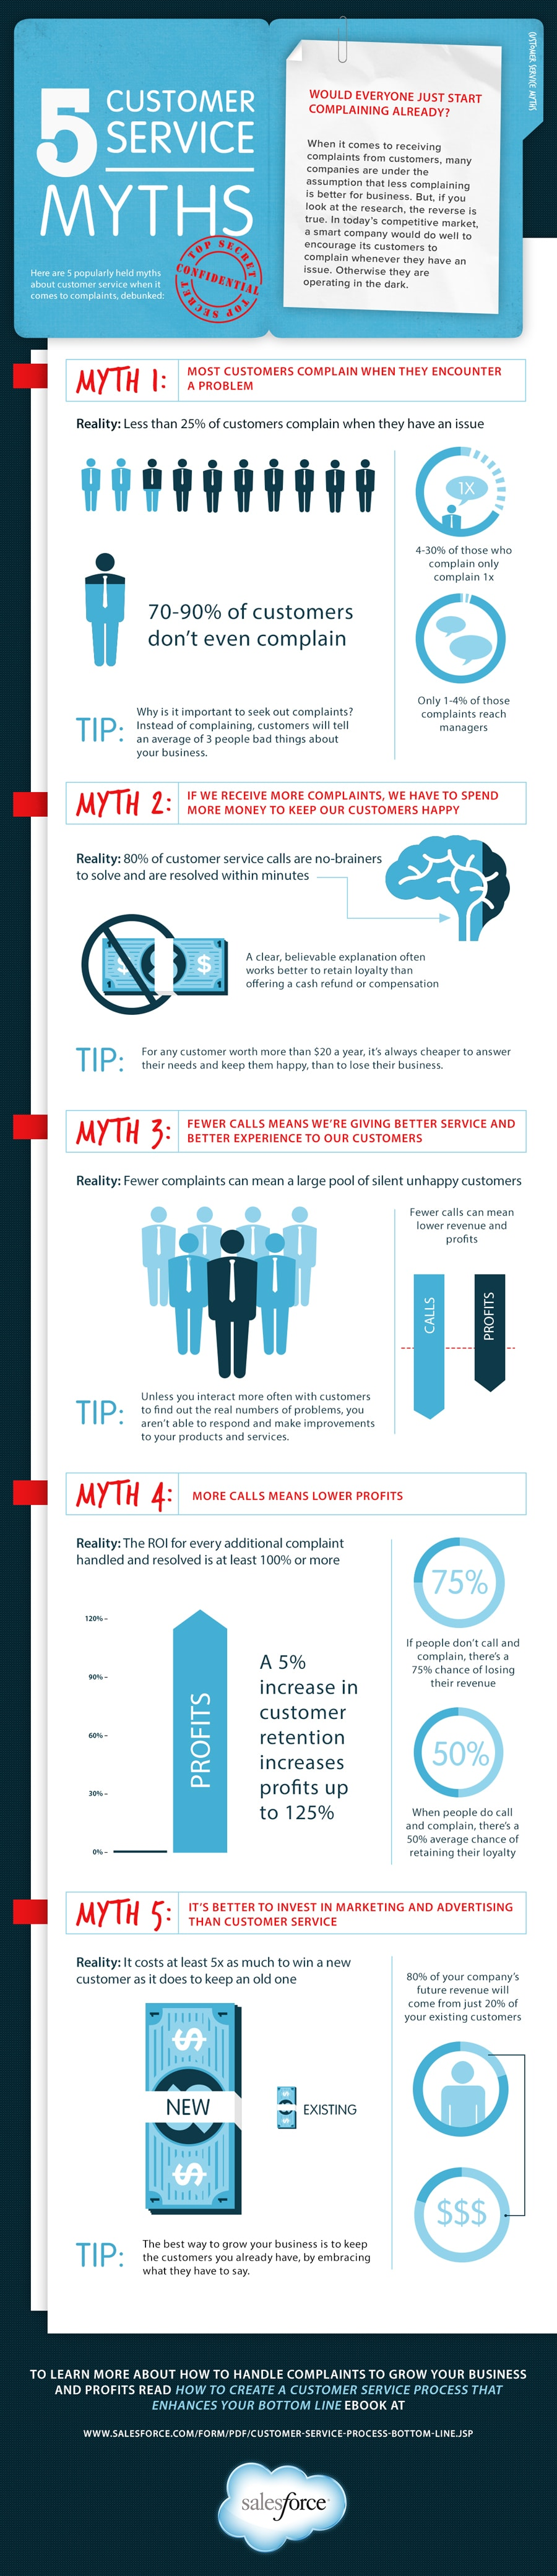 5-customer-service-myths-infographic